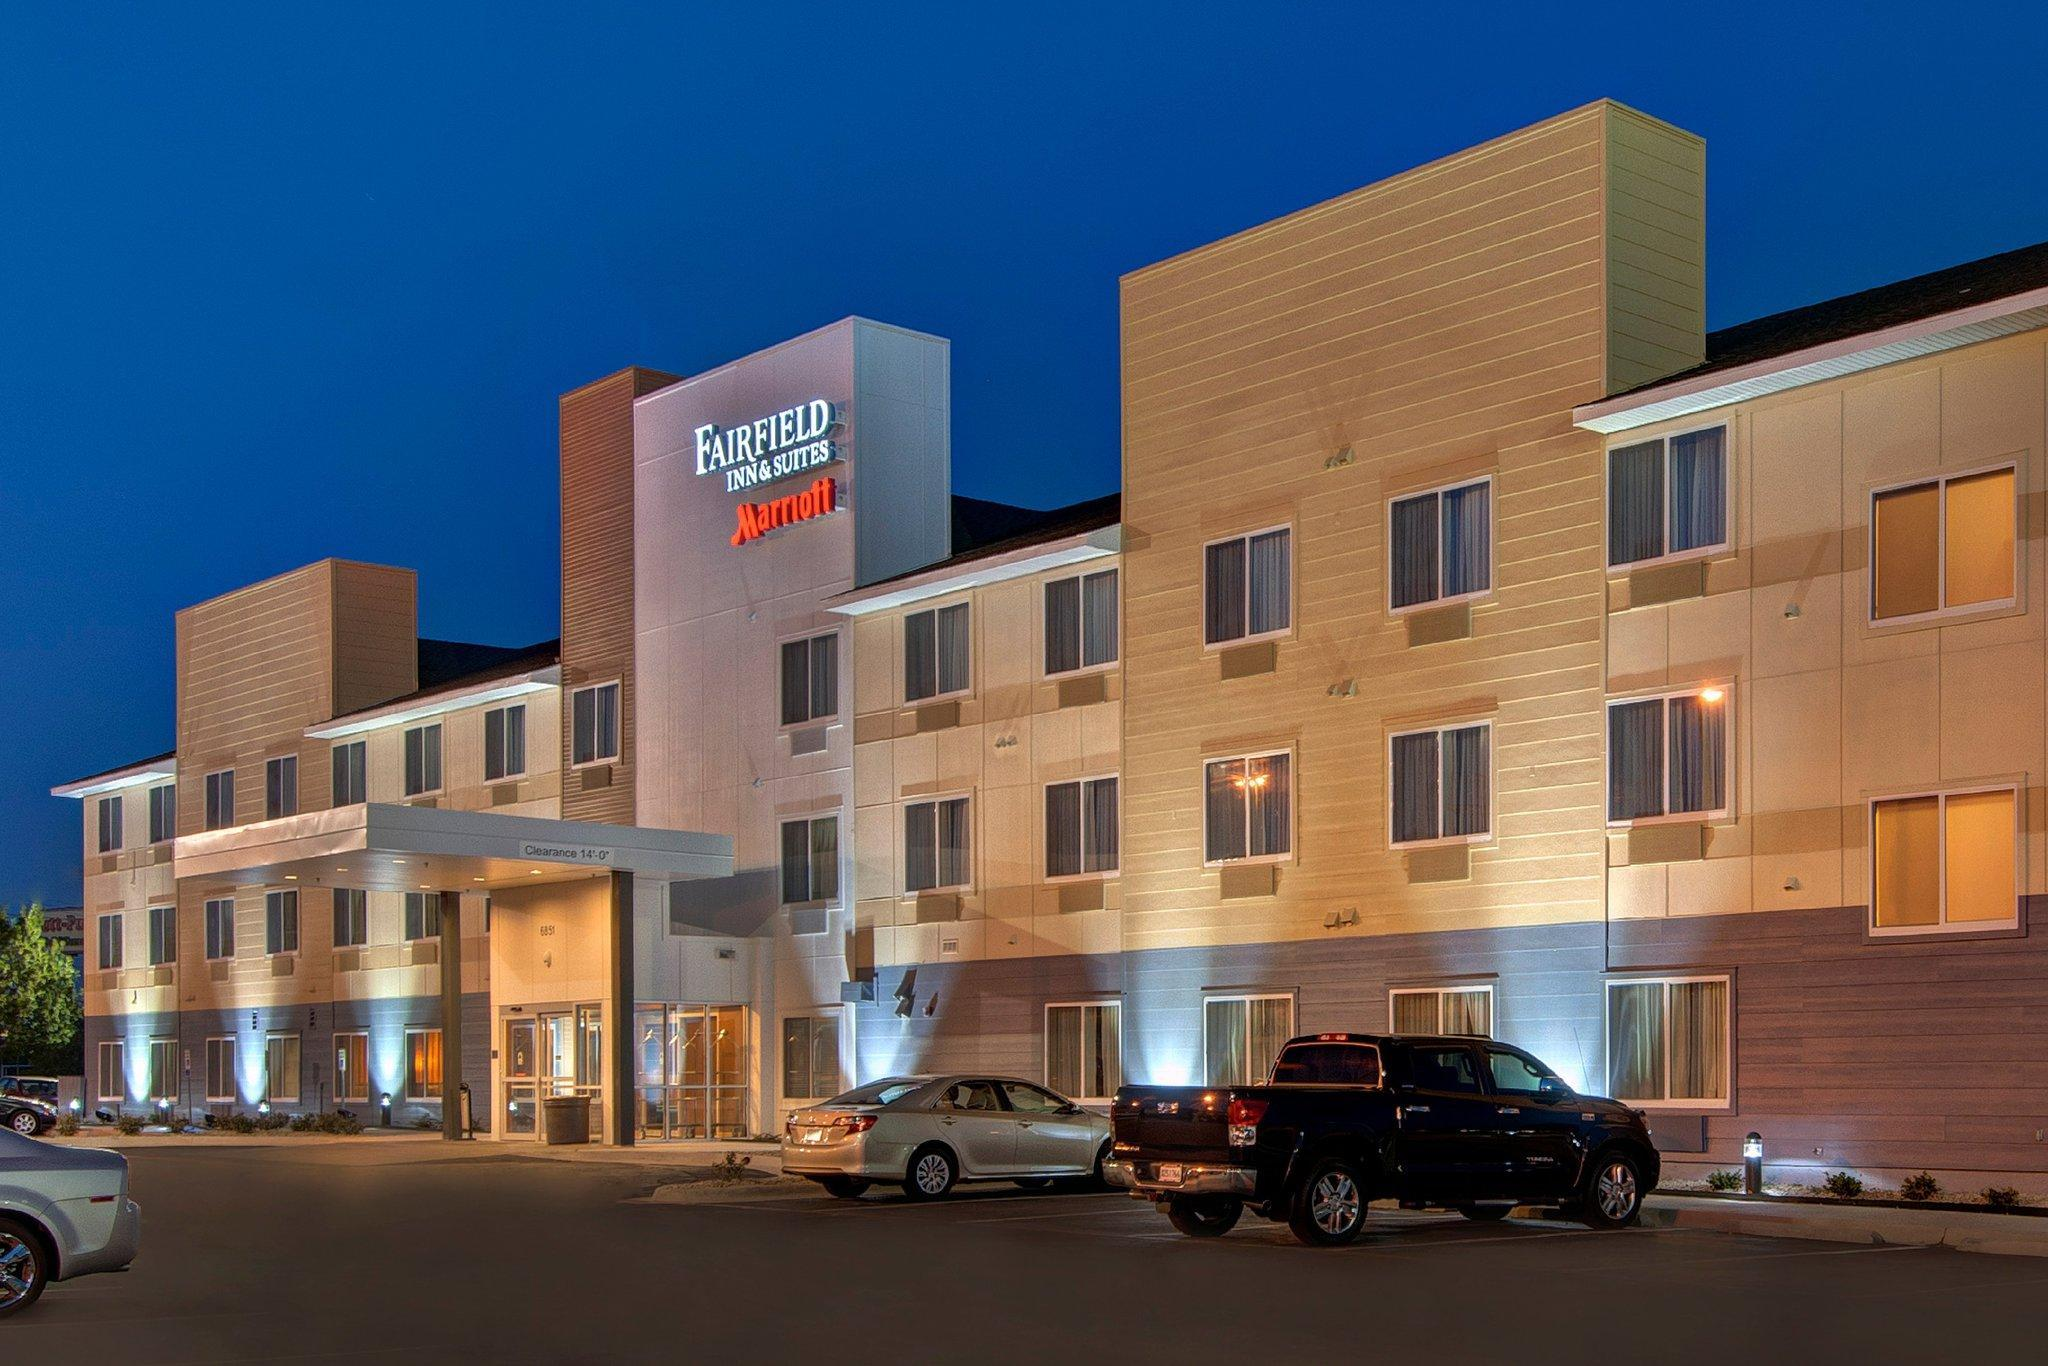 Fairfield Inn And Suites Fort Worth I 30 West Near NAS JRB